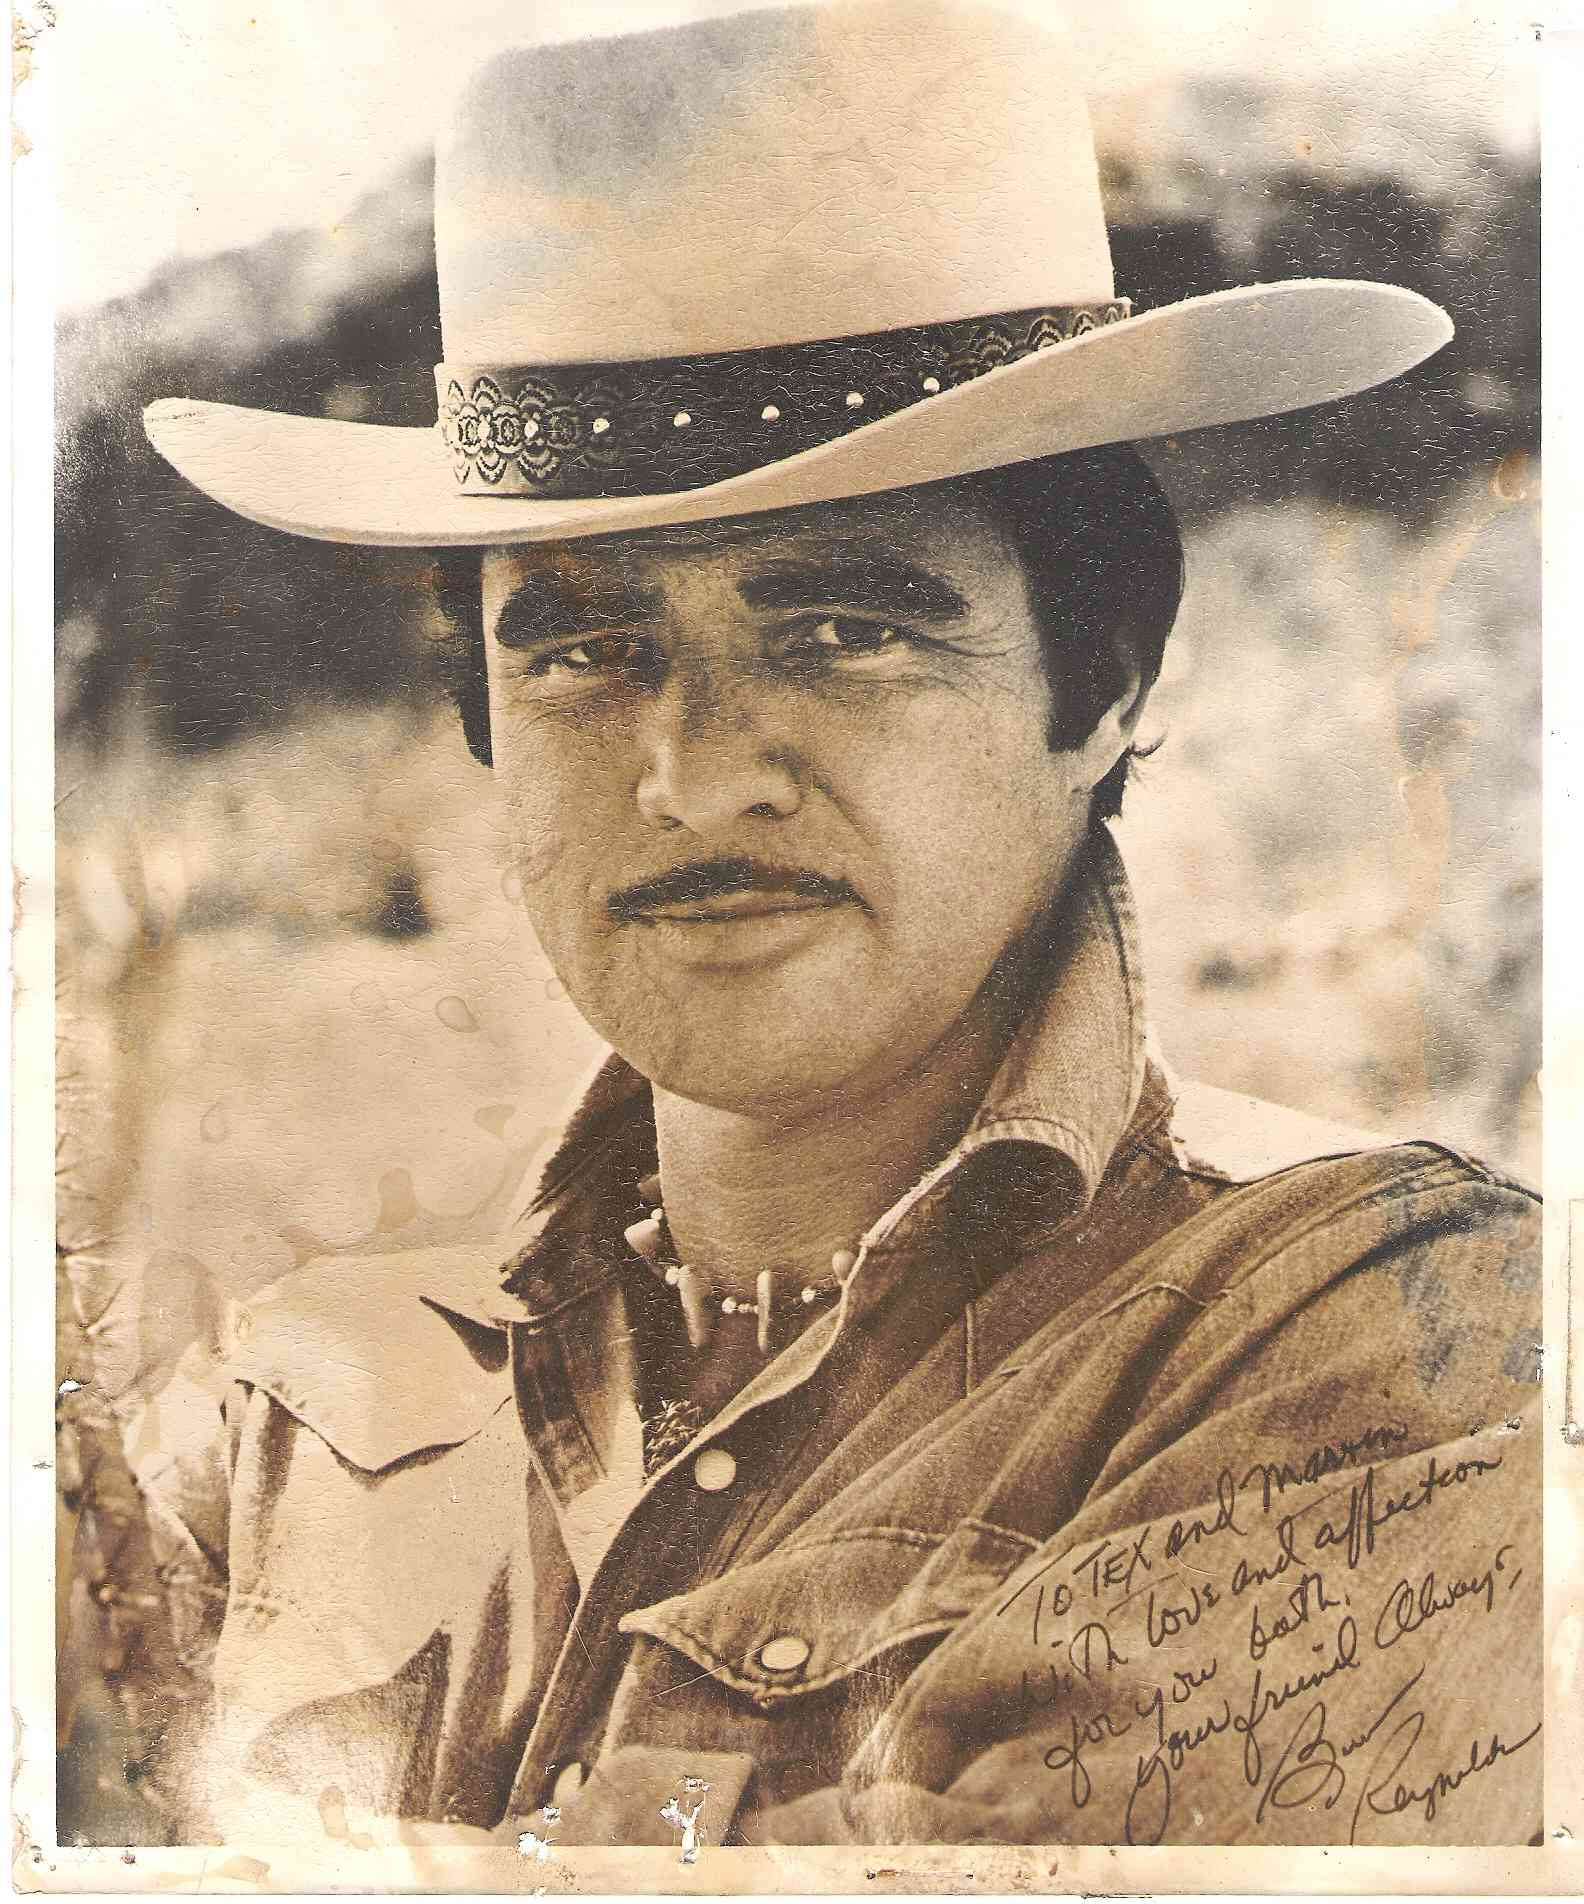 Autographed picture of Burt Reynolds